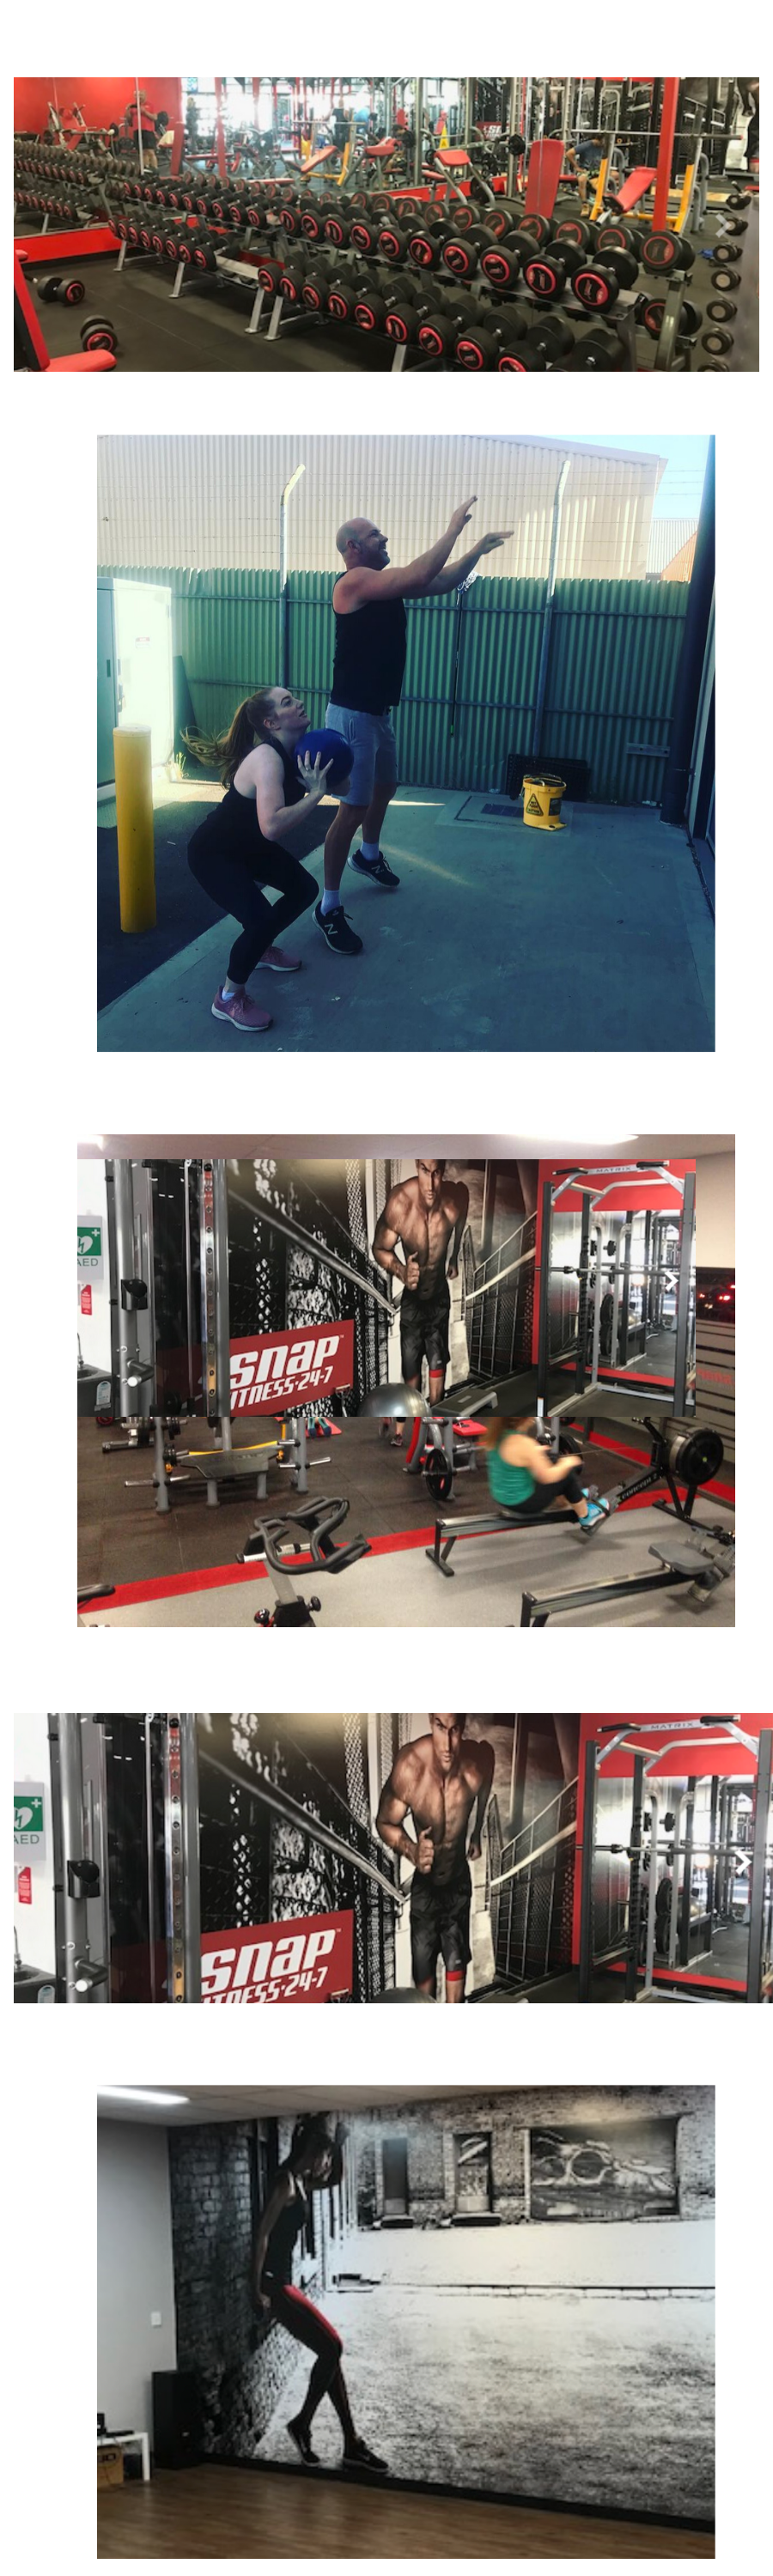 Snap Fitness - 24 hour gym Dubbo Dubbo